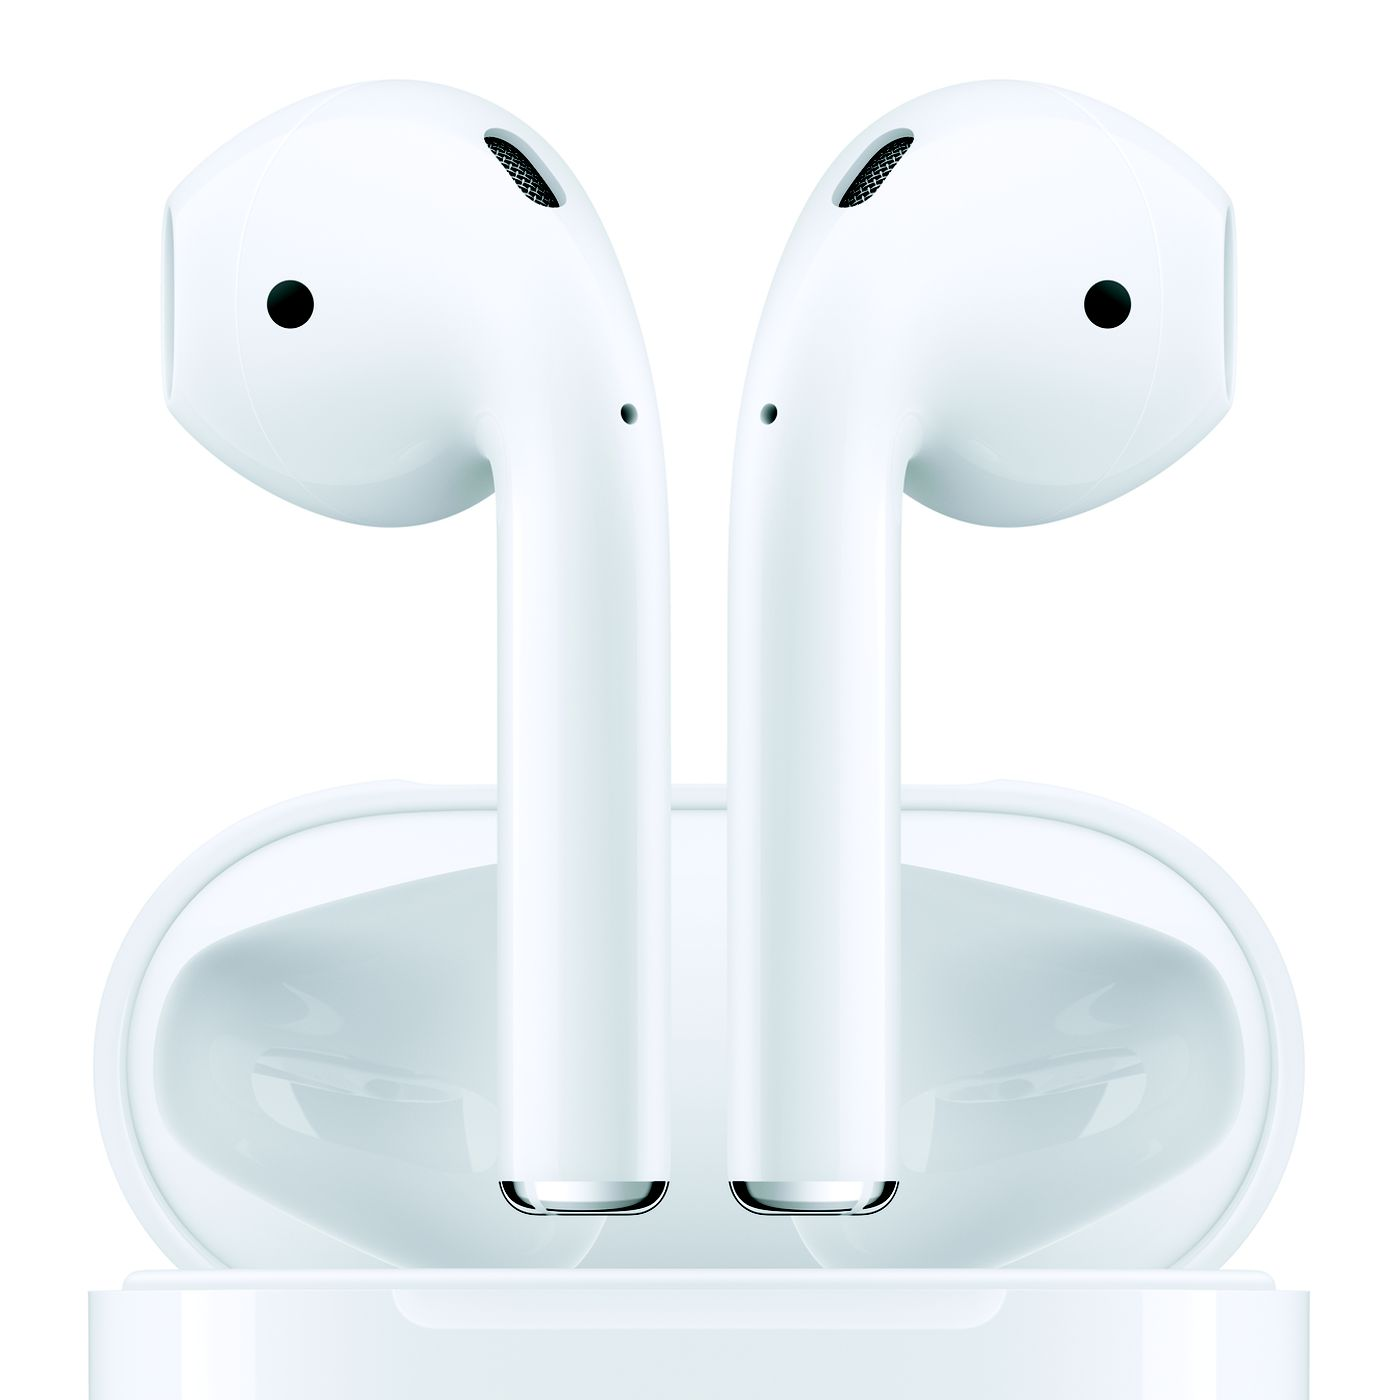 Airpods png transparent background. The price might be